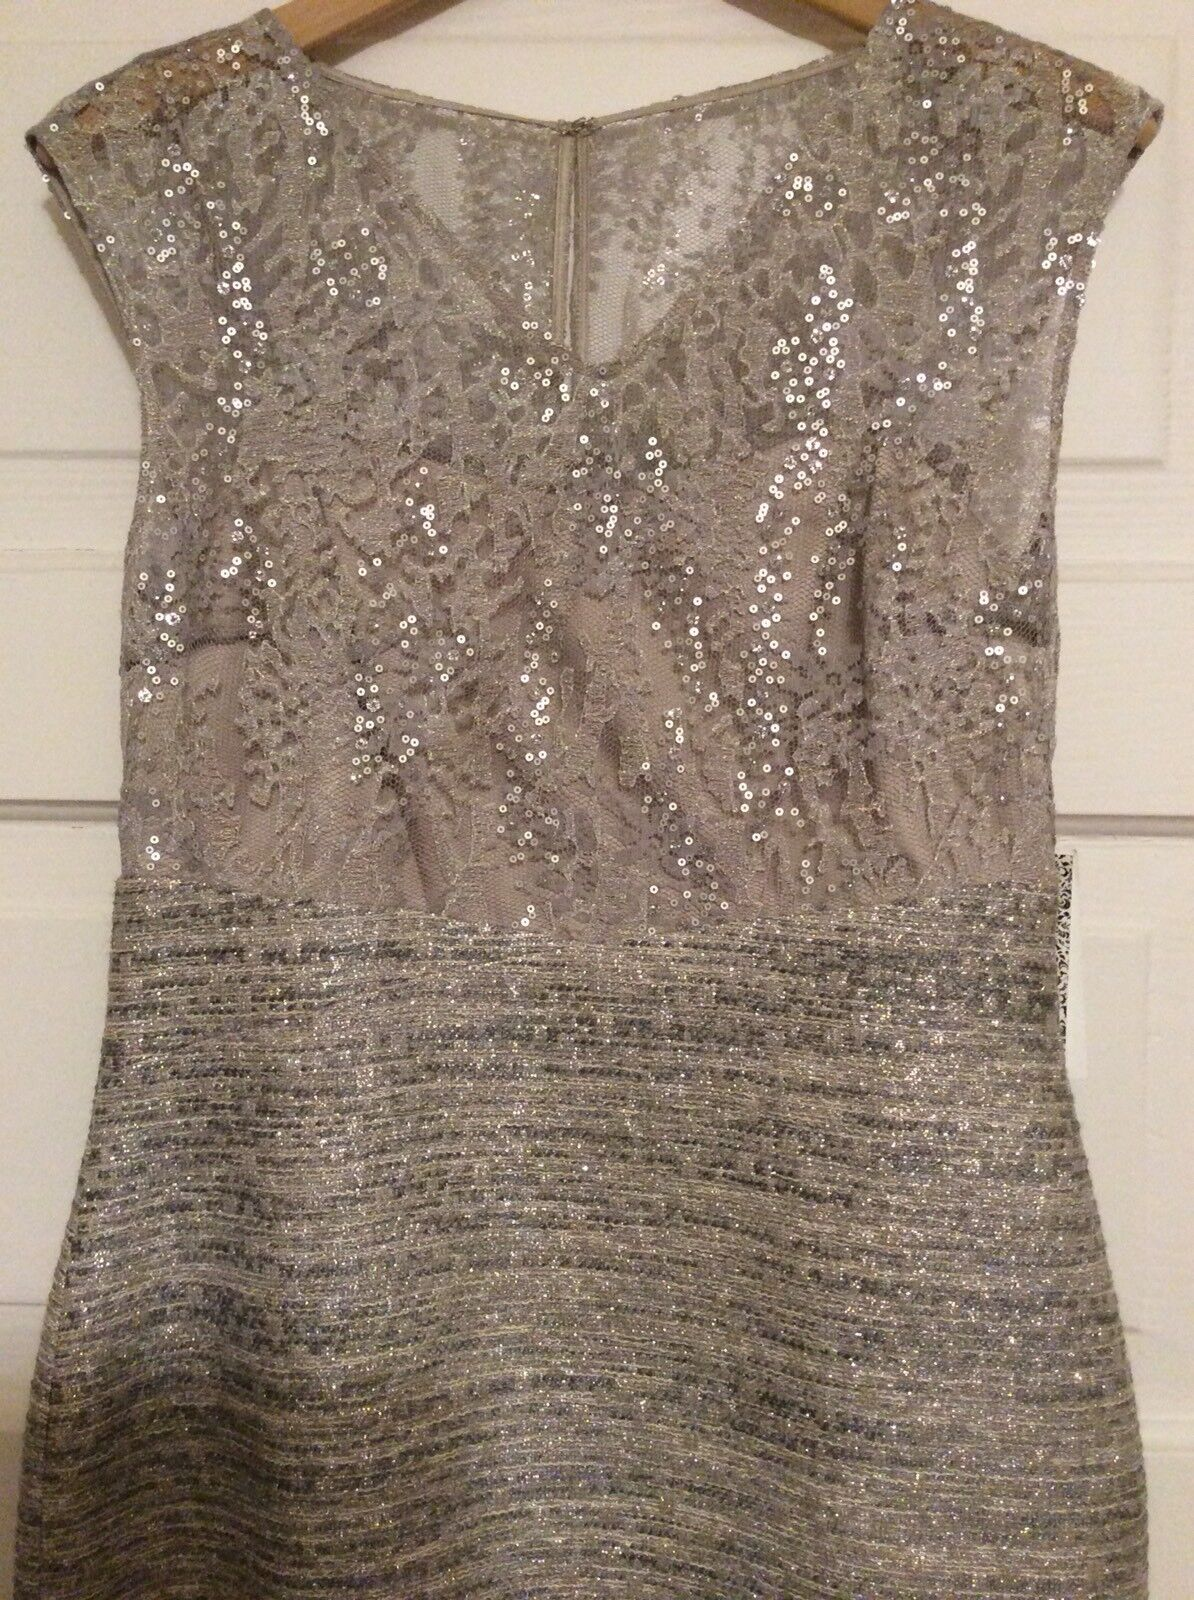 baccba25b82 Kay Unger Lace and Tweed Sheath Dress With Sequins Silver Metallic ...